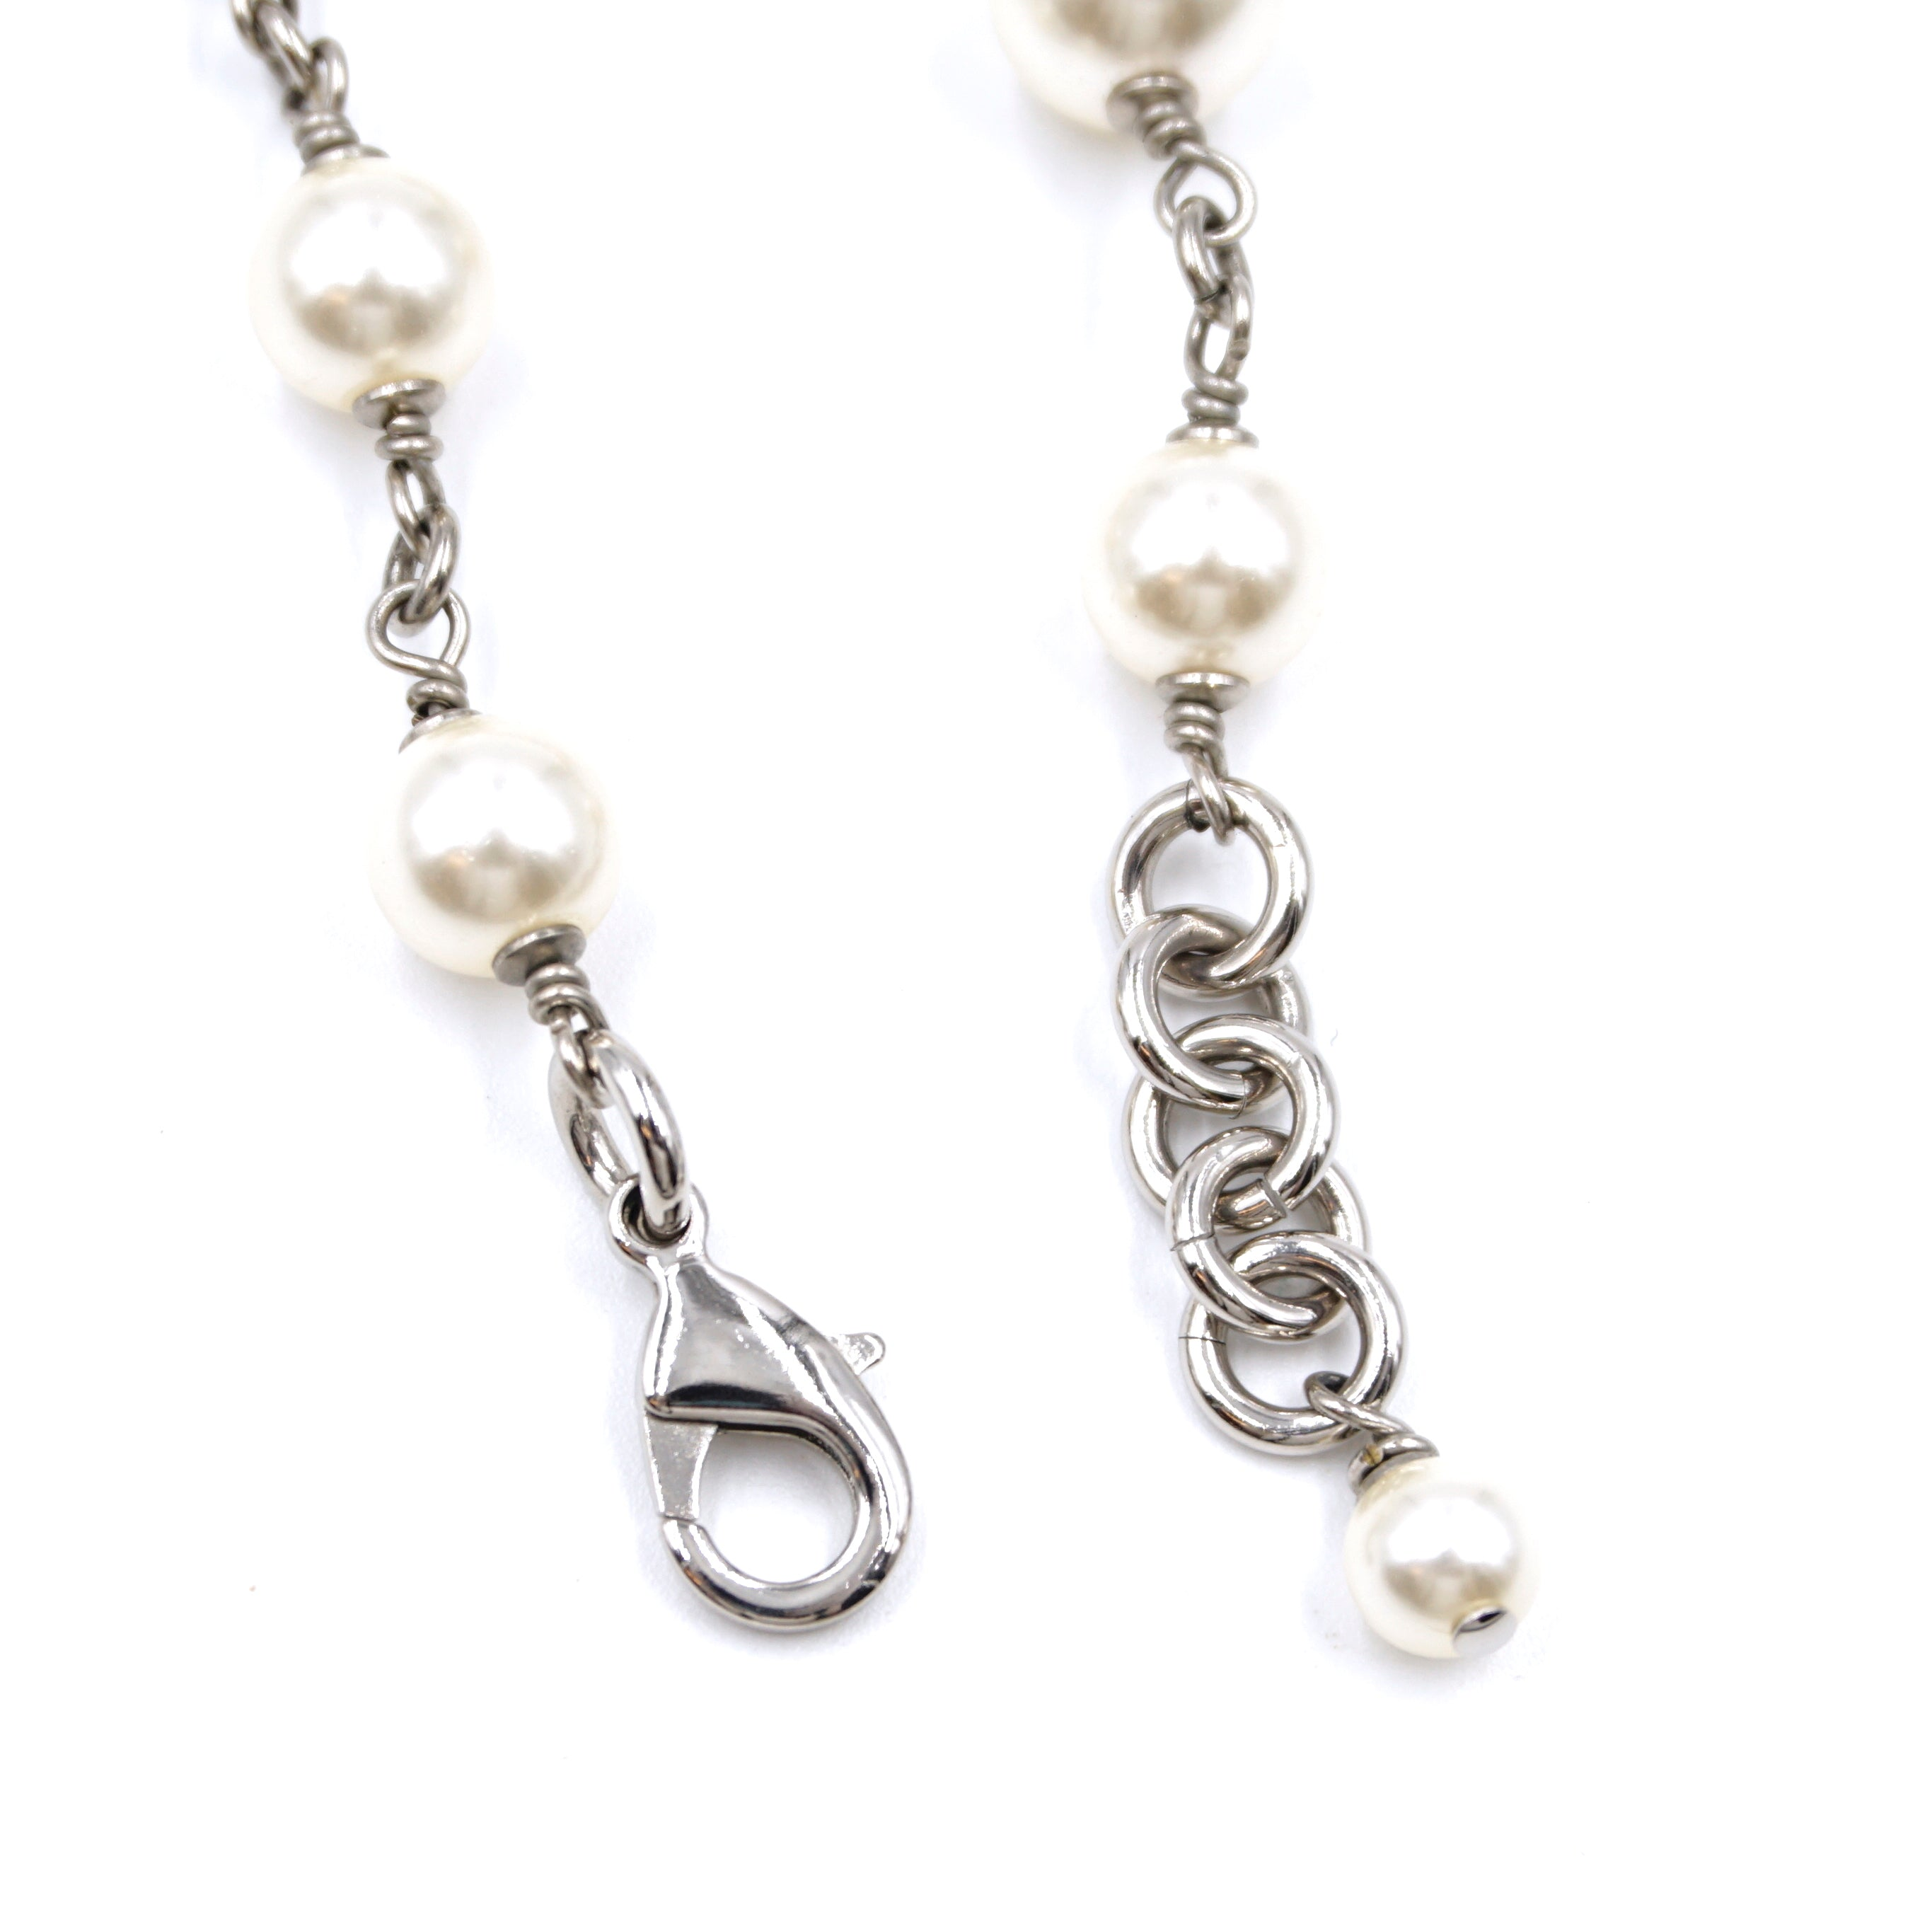 Chanel Pearls CC Crystals Single Double Strand Necklace